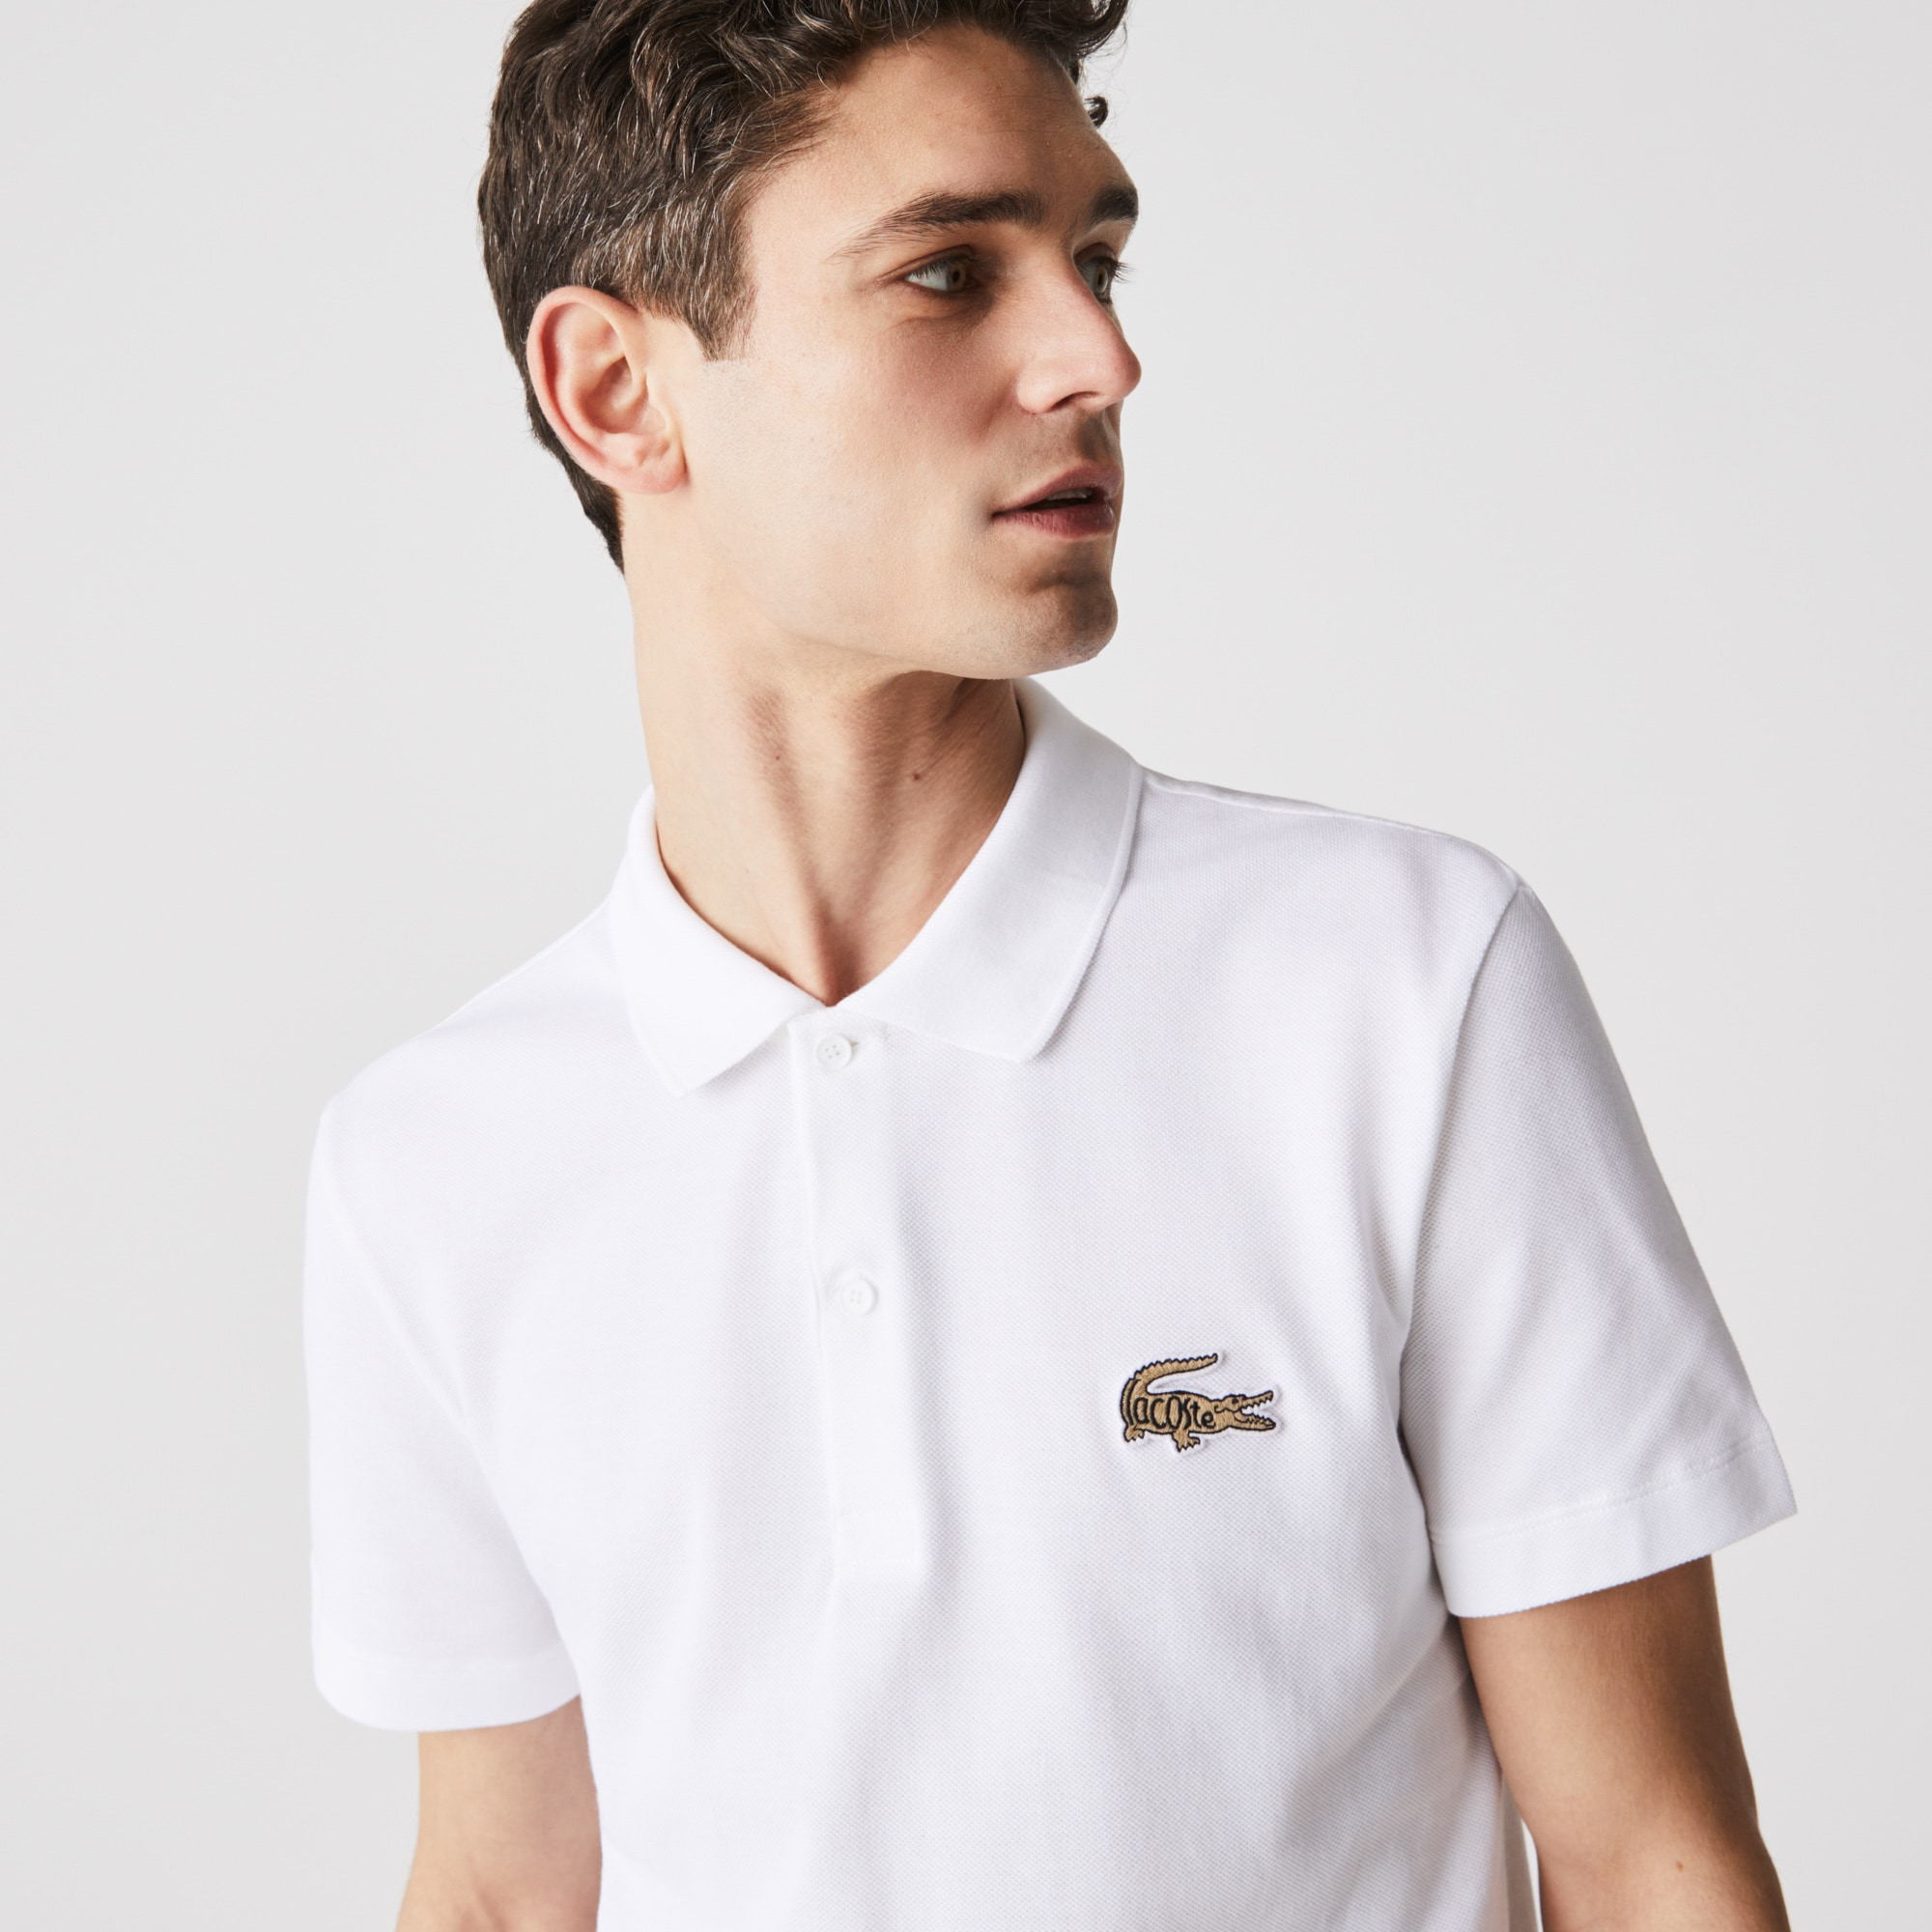 라코스테 Lacoste Men's Regular Fit Cotton Pique Polo